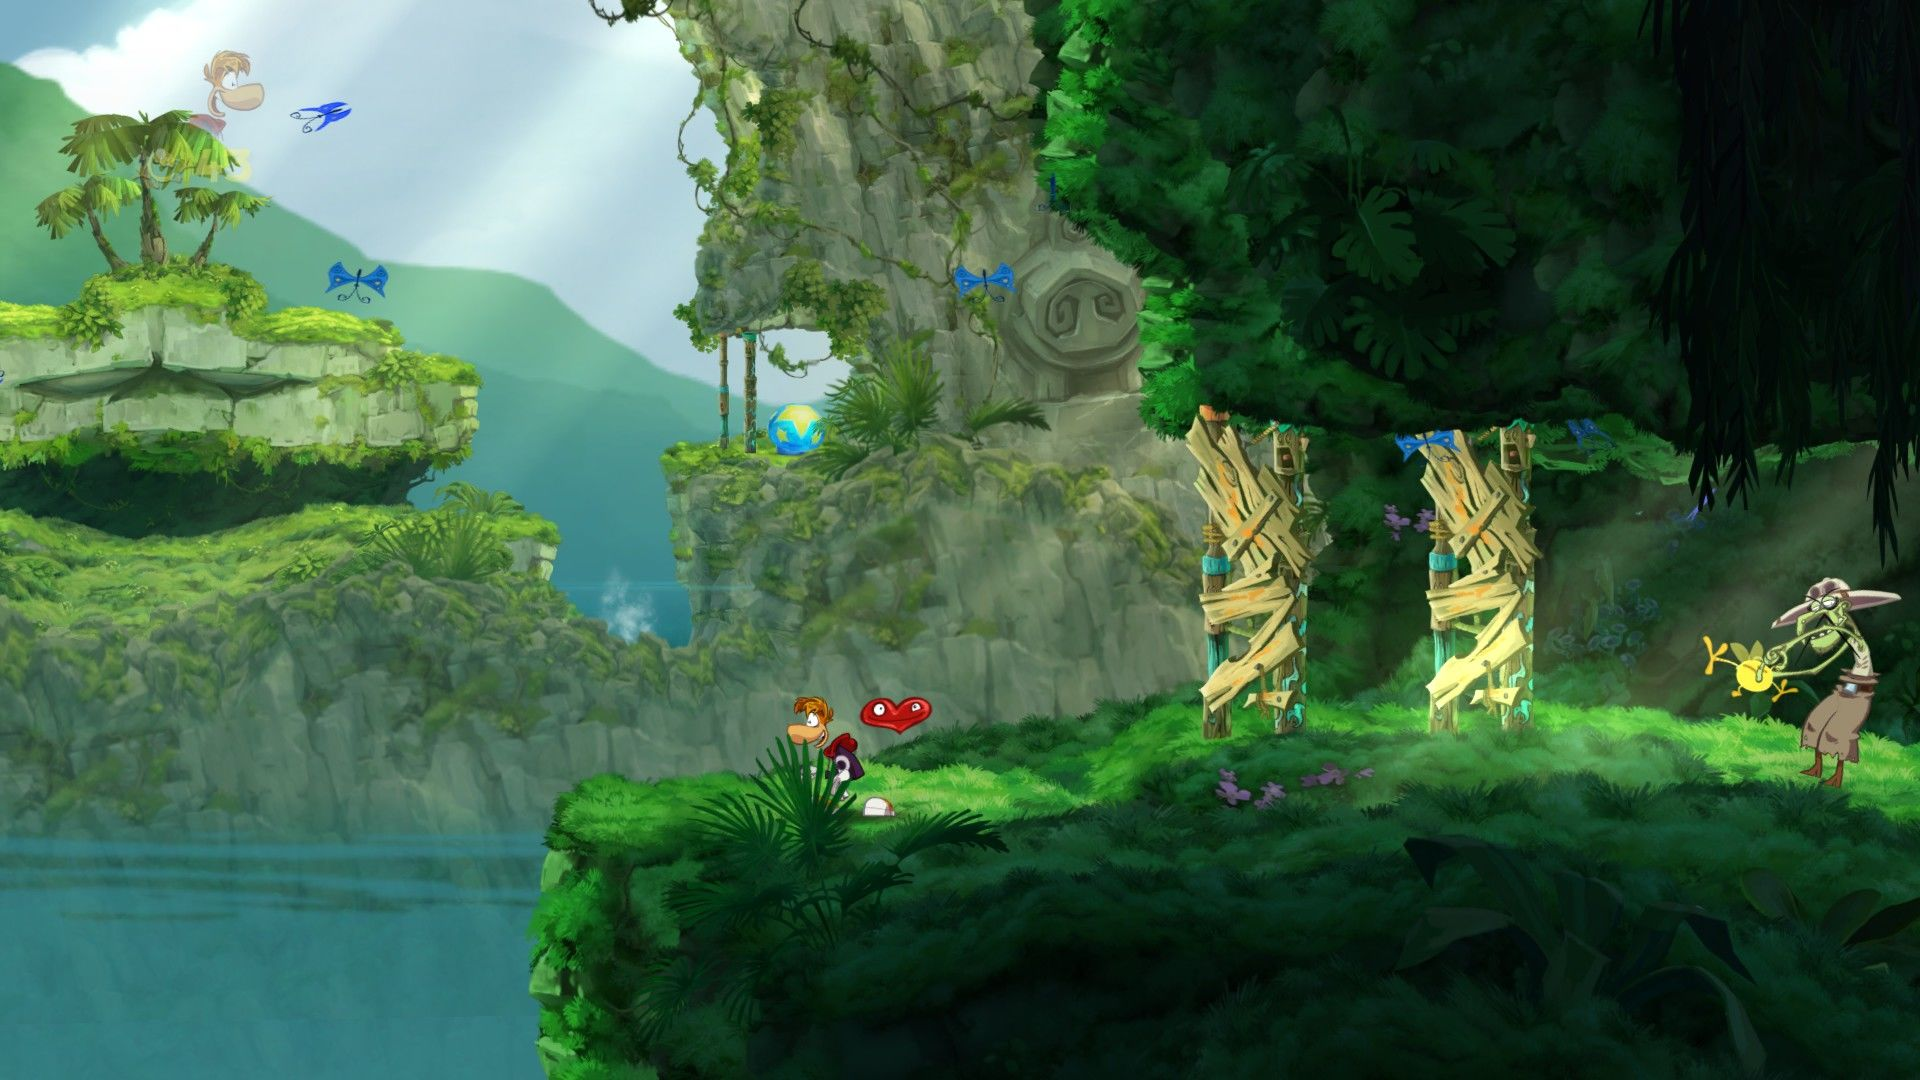 http://www.mobygames.com/images/shots/l/553958-rayman-origins-windows-screenshot-the-game-switches-between.jpg